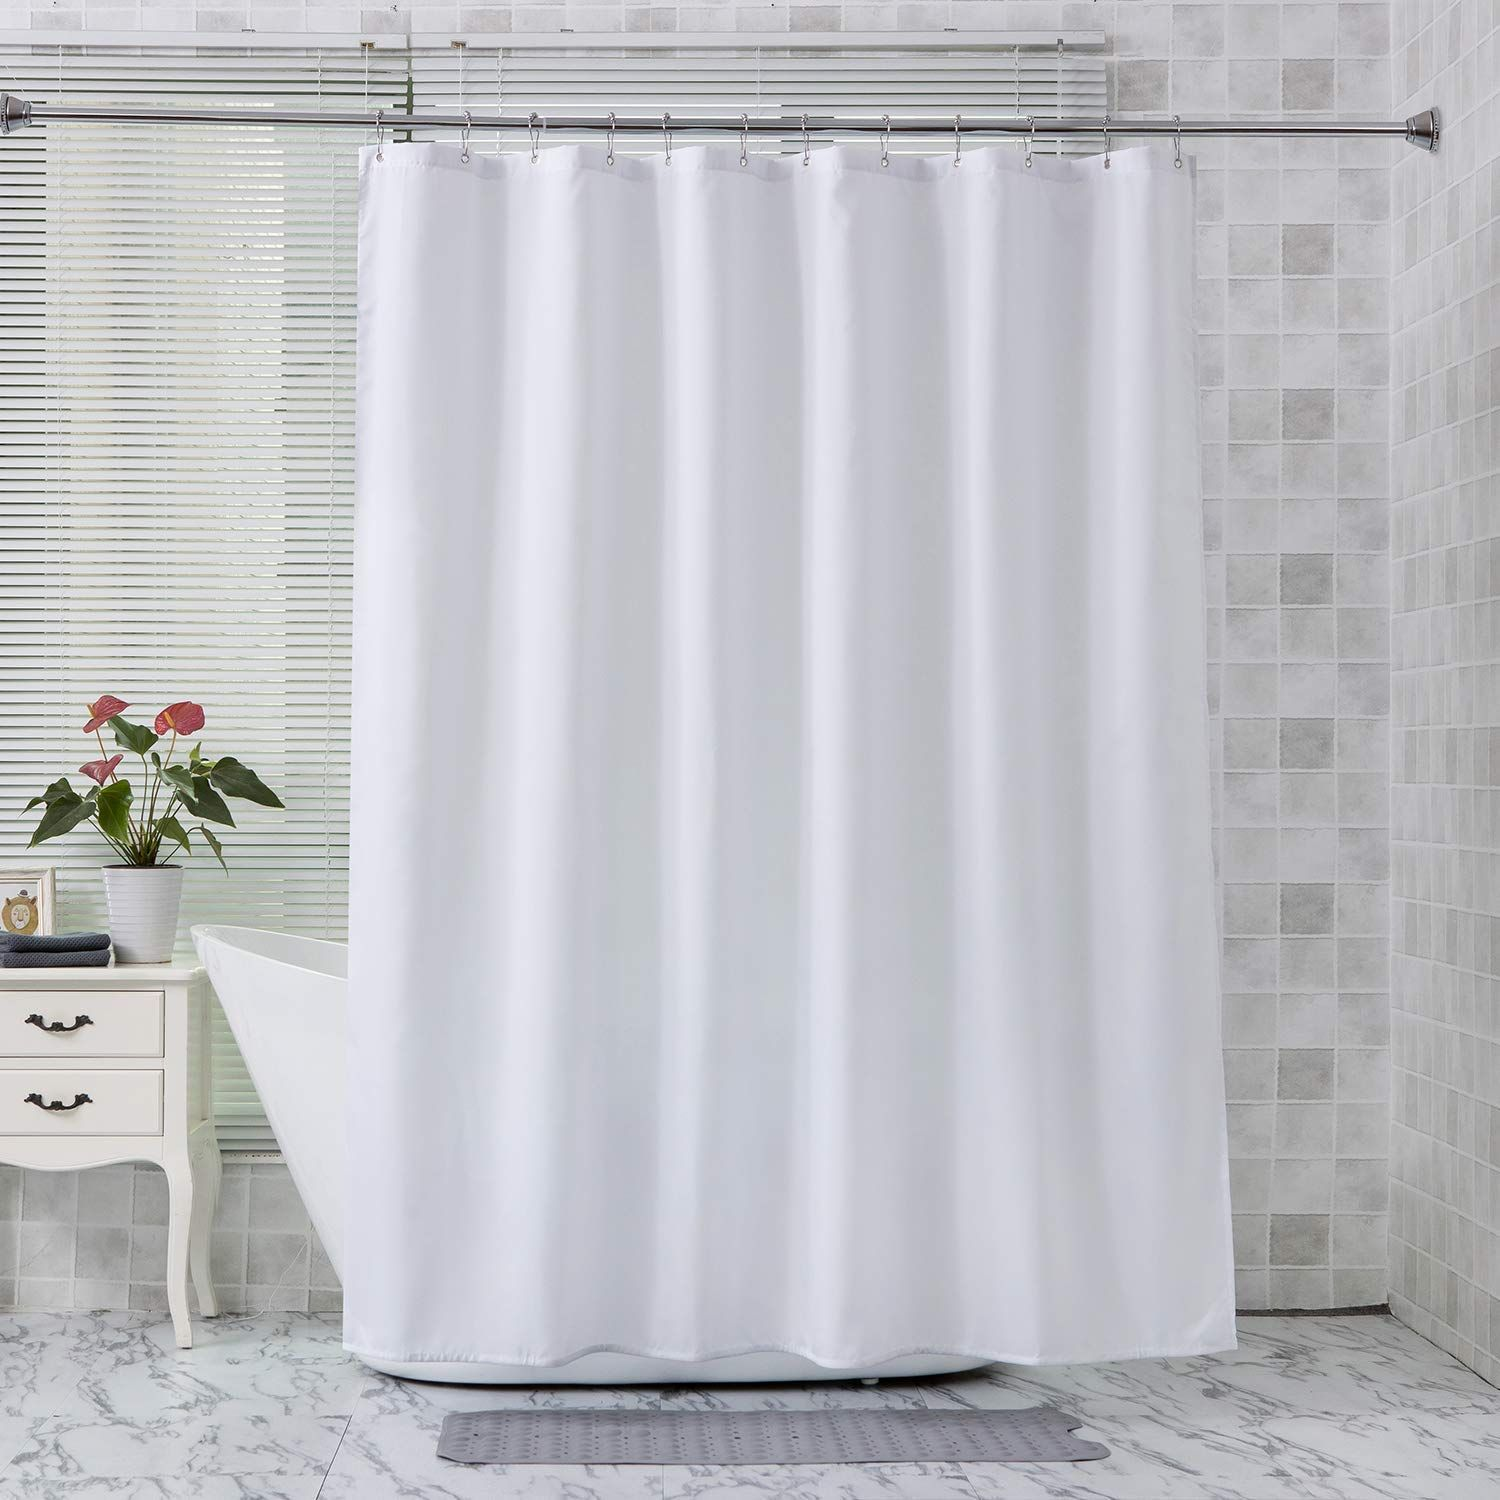 Amazer Fabric Shower Curtain Liner White Polyester Fabric Shower